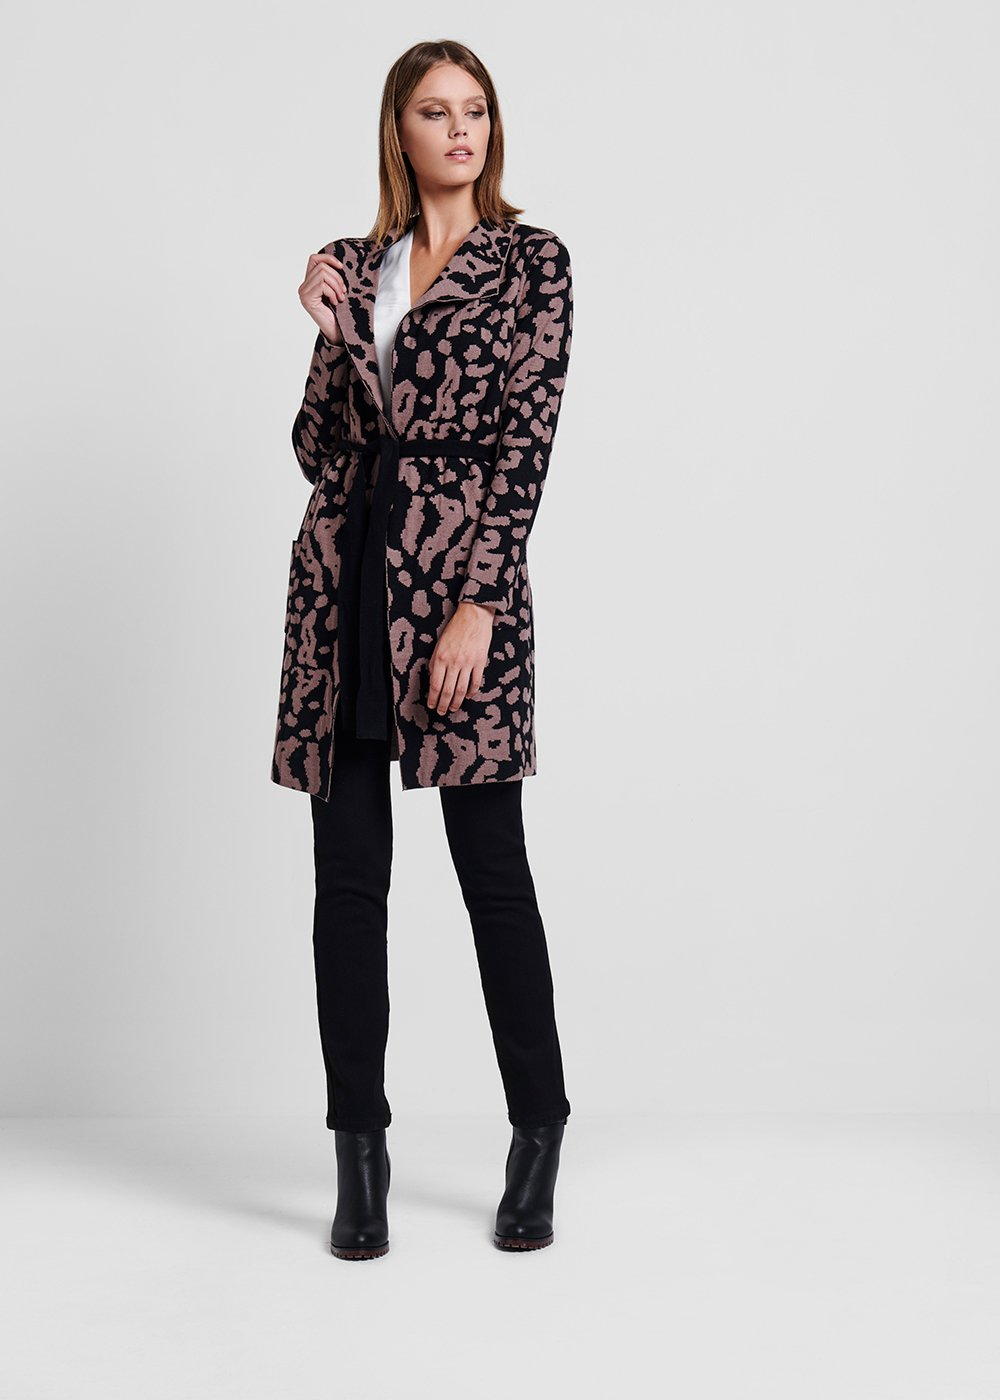 Spotted - print jacquard knit cardigan - Suolo / Black Animalier - Woman